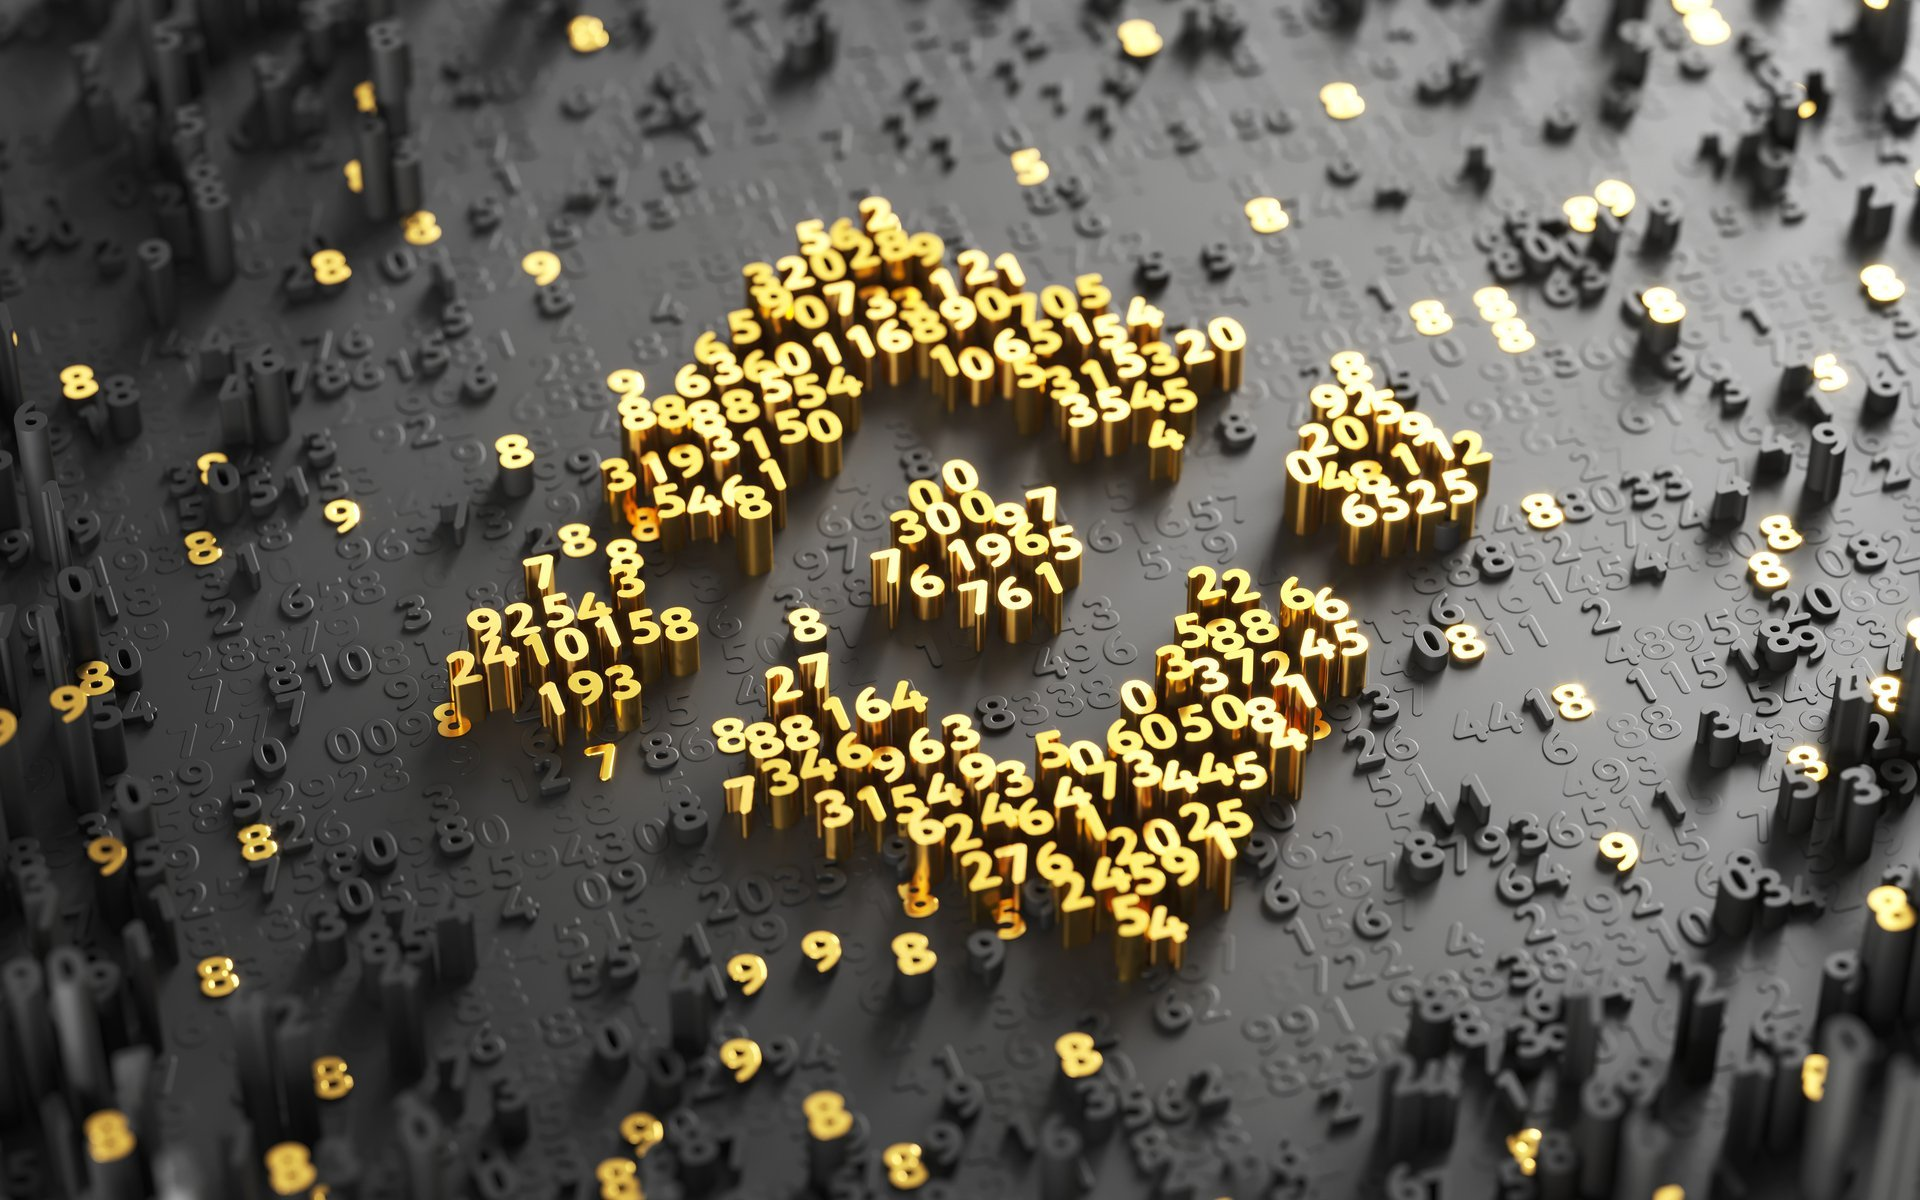 Binance Confirms Trading Relaunch for May 15 as Upgrade Completes